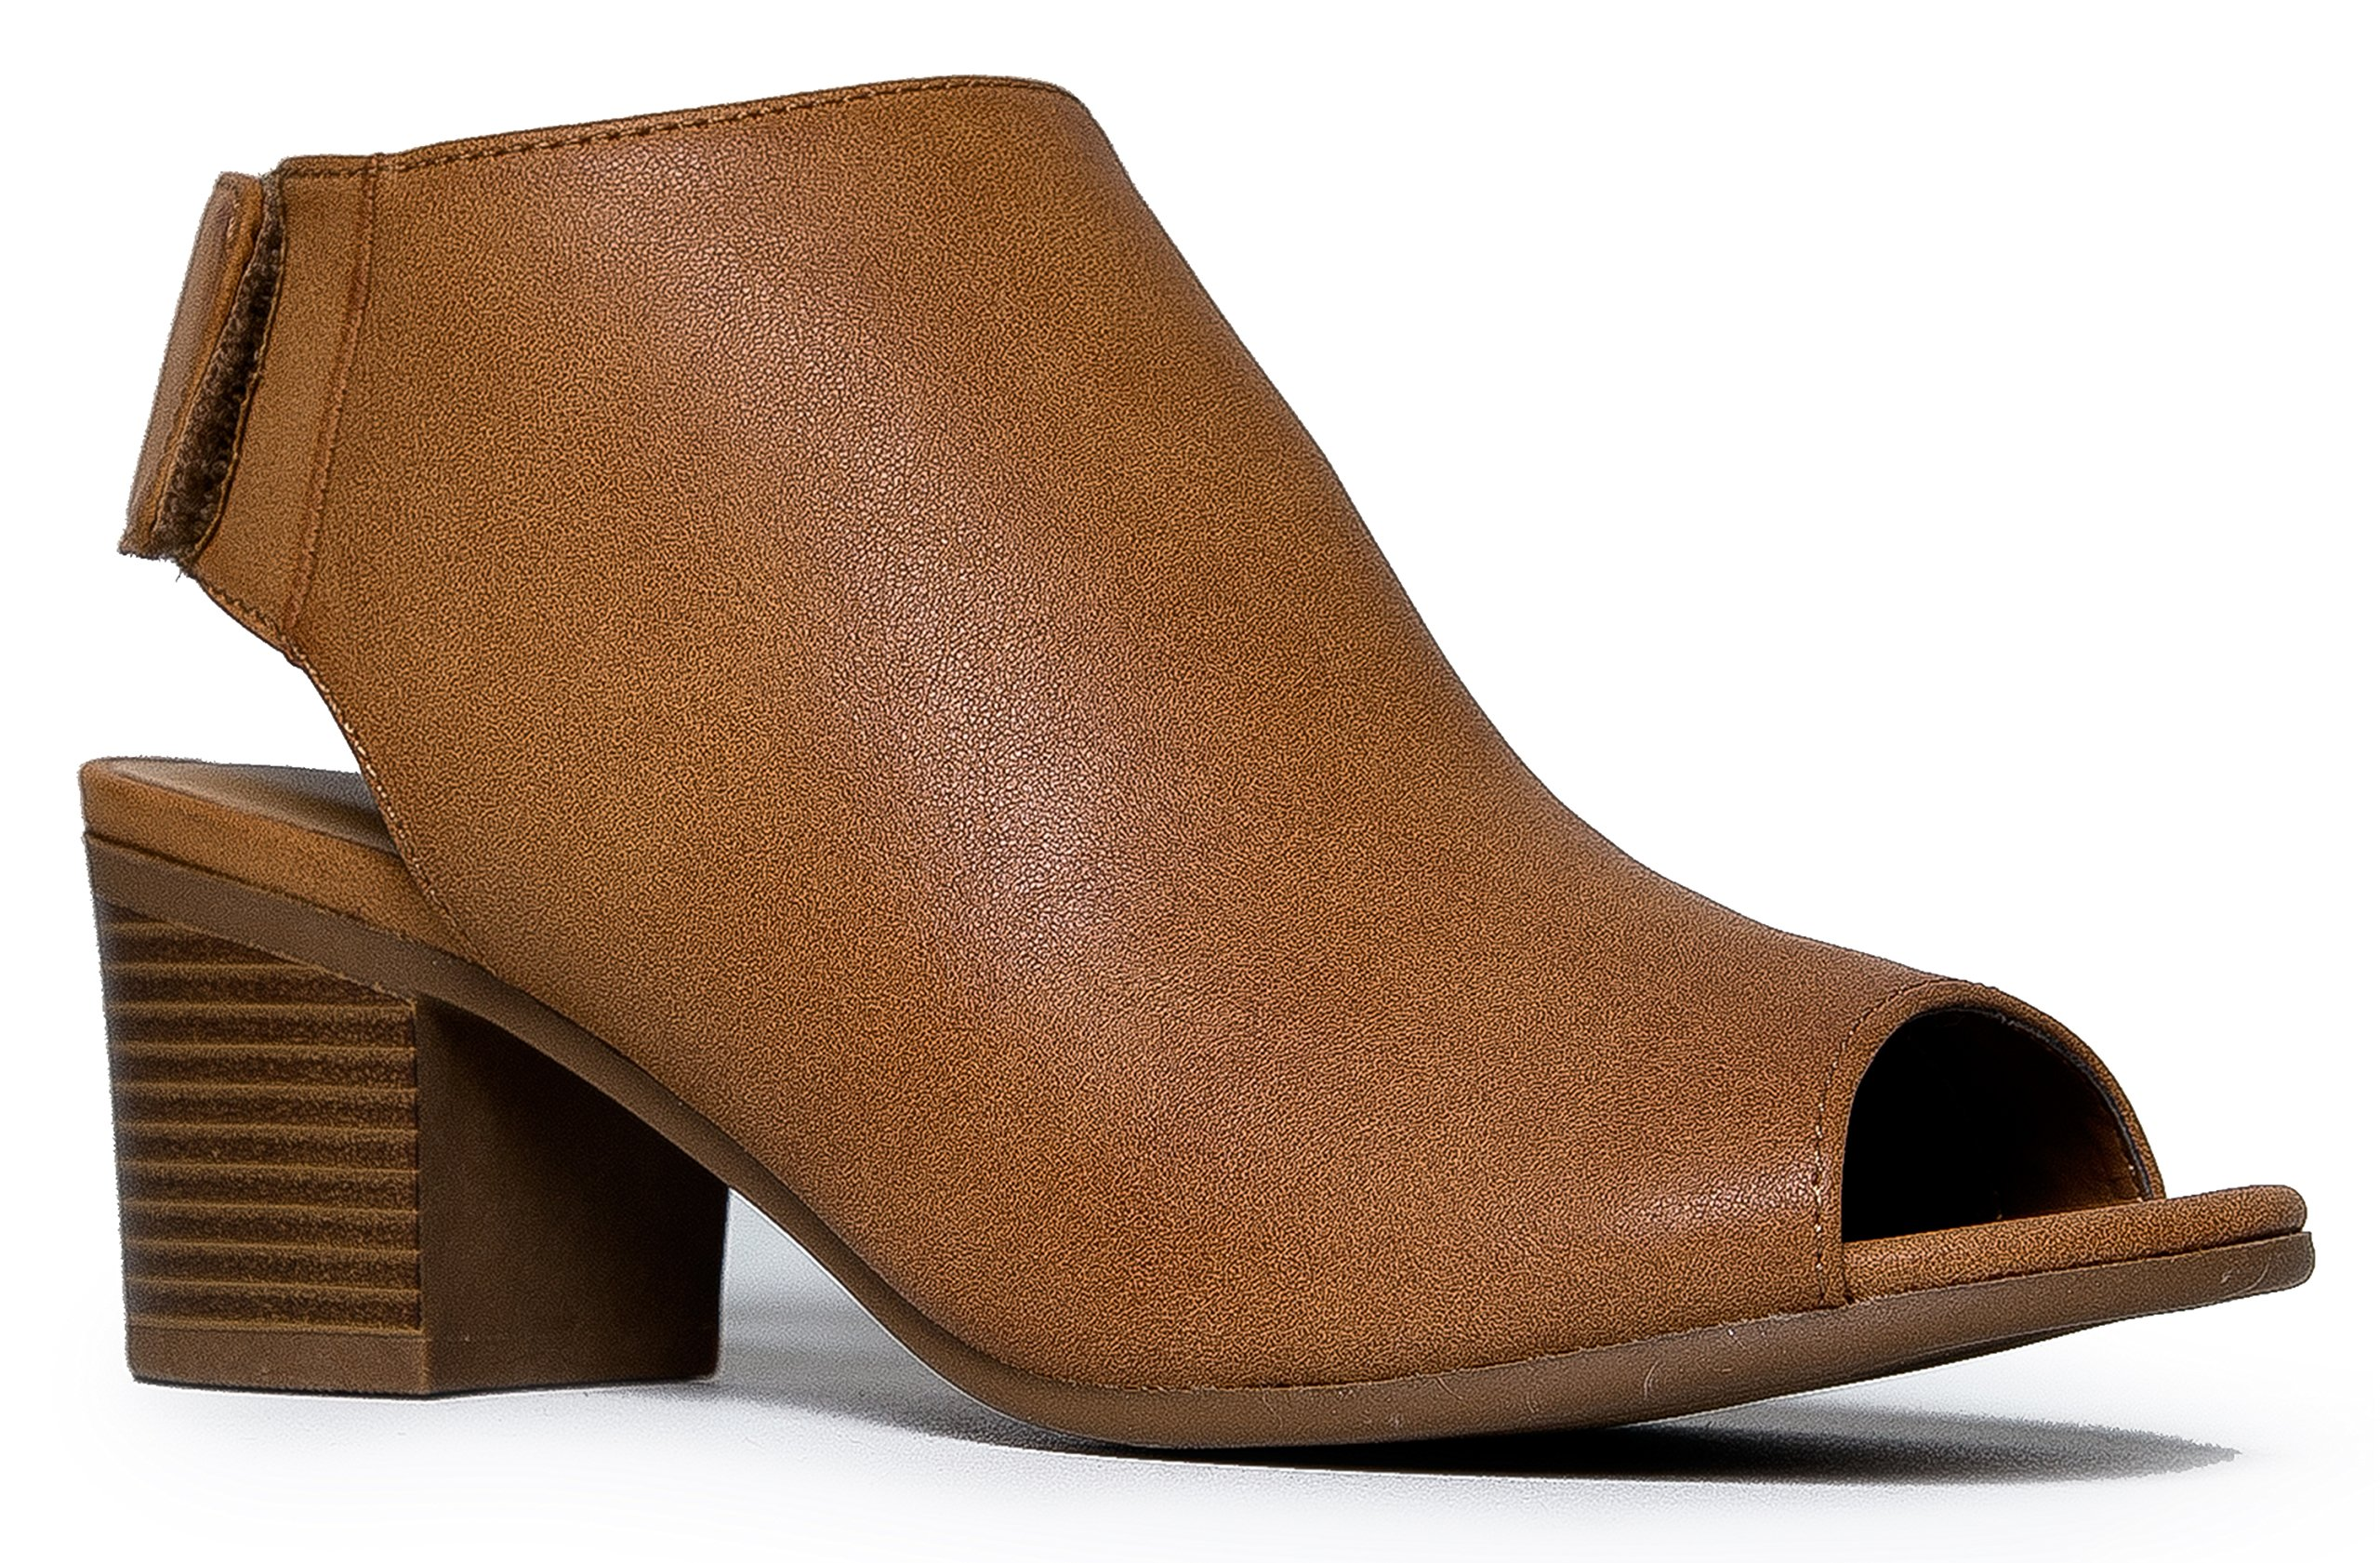 Peep Toe Bootie – Low Stacked Heel - Open Toe Ankle Boot Cutout Velcro Enclosure,Tan Pu,8 B(M) US by J. Adams (Image #1)